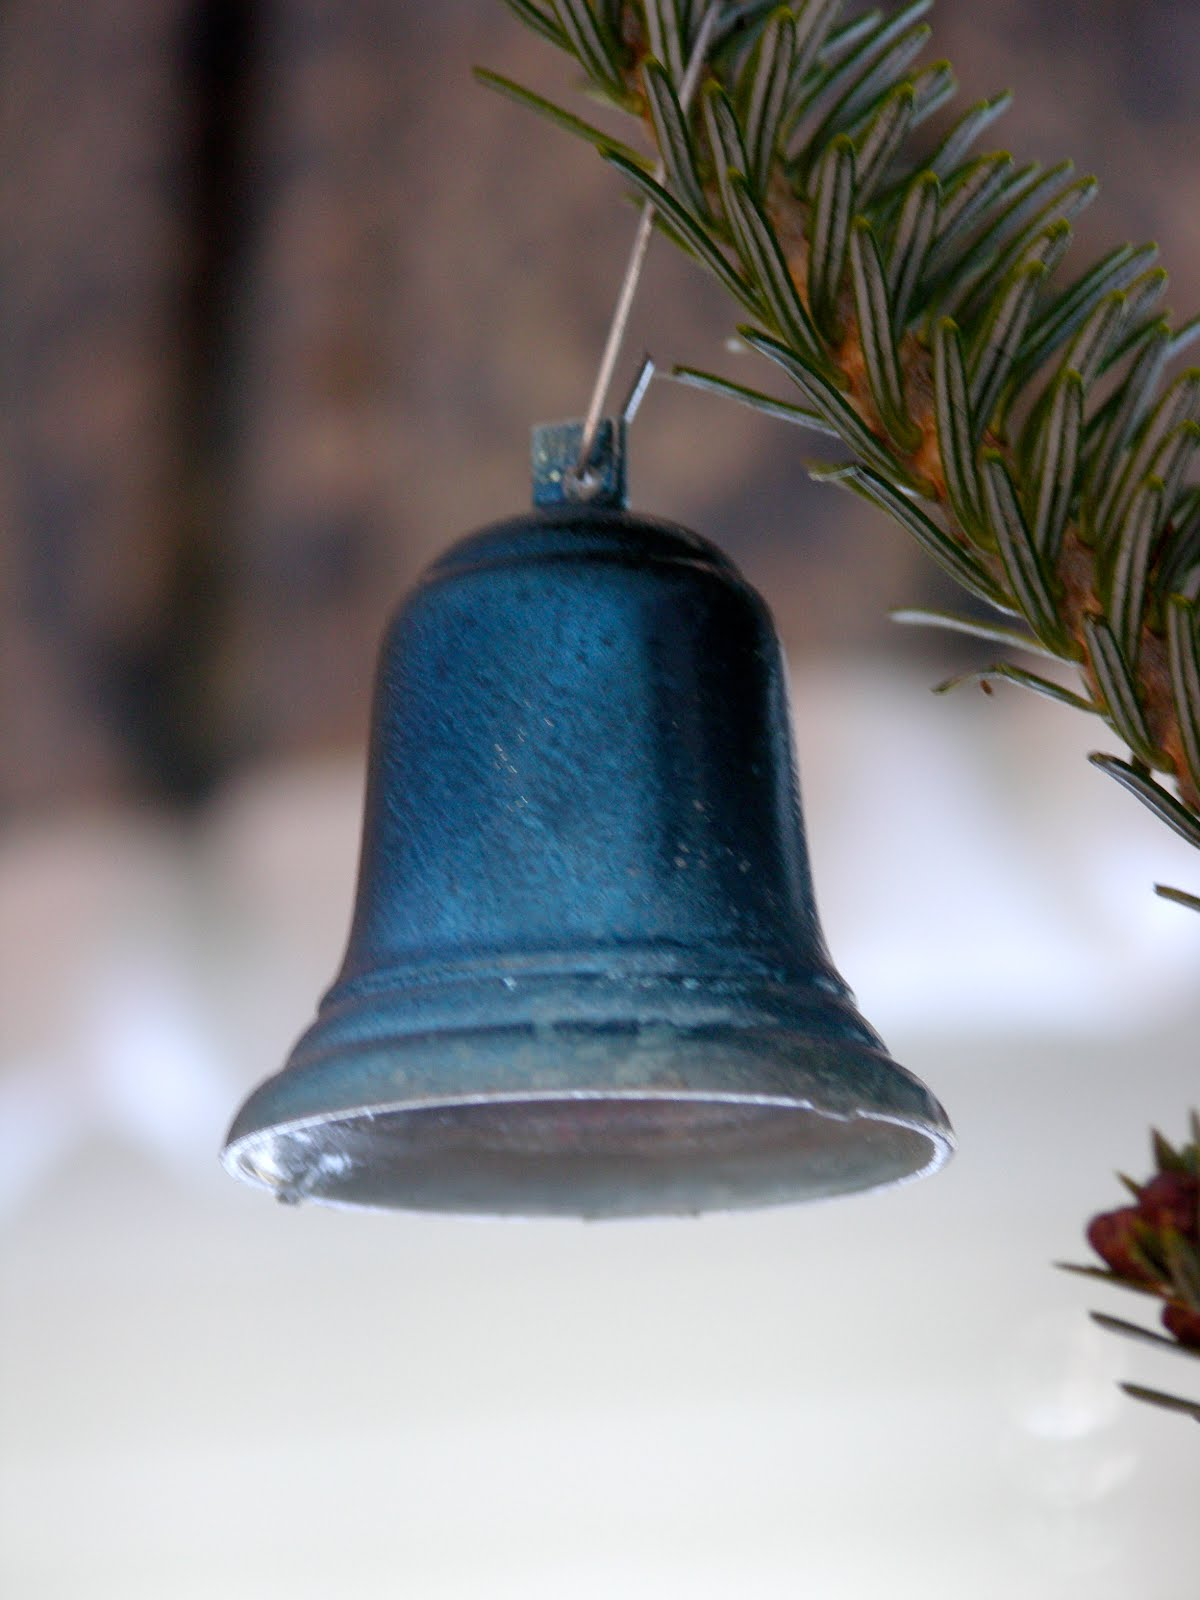 Inscribe writers online ring those christmas bells by